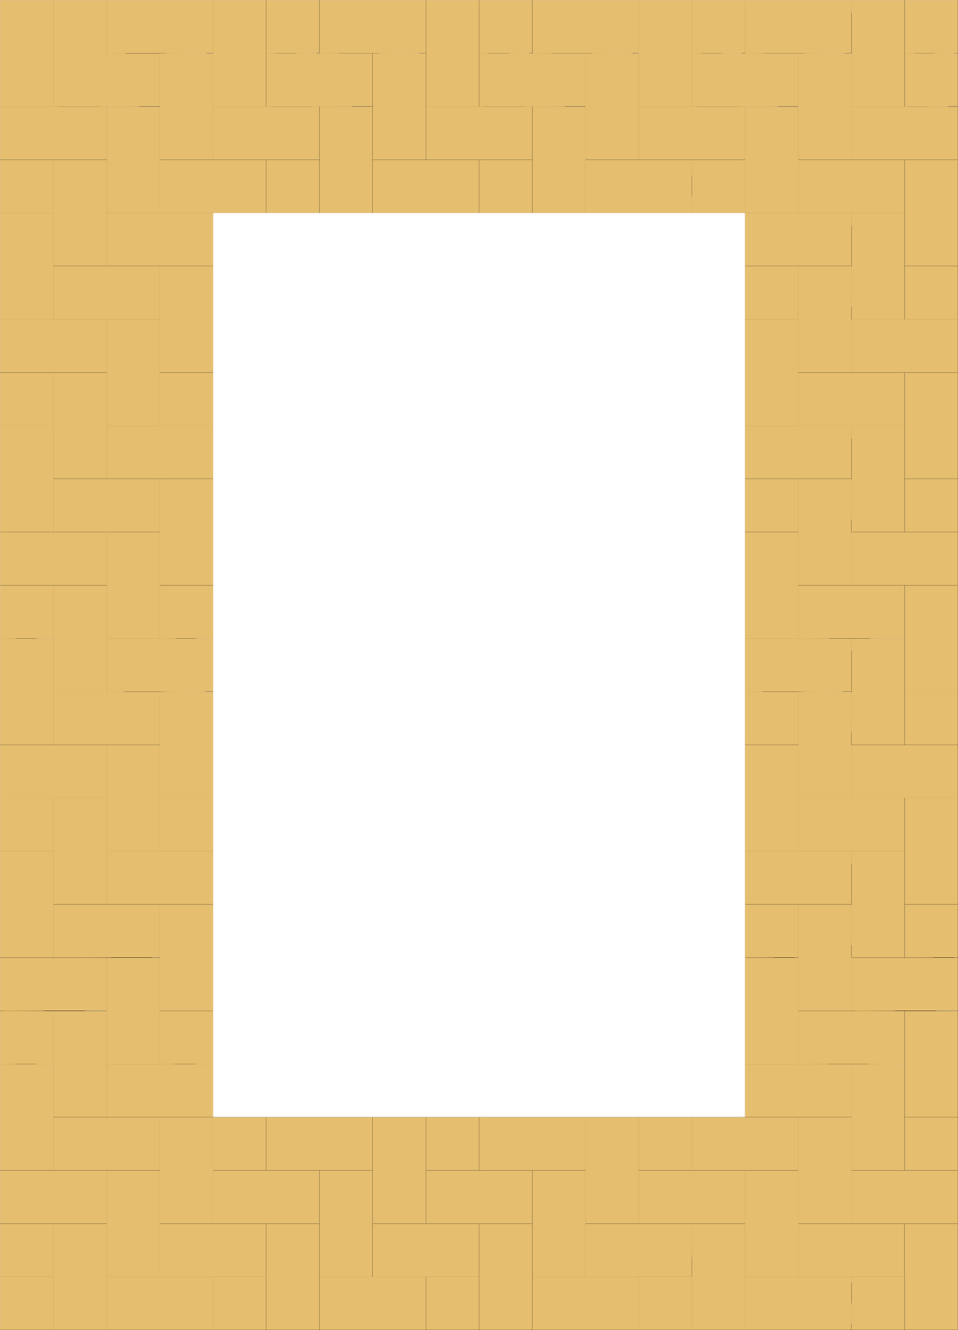 Illustration of a blank brick frame border : Free Stock Photo